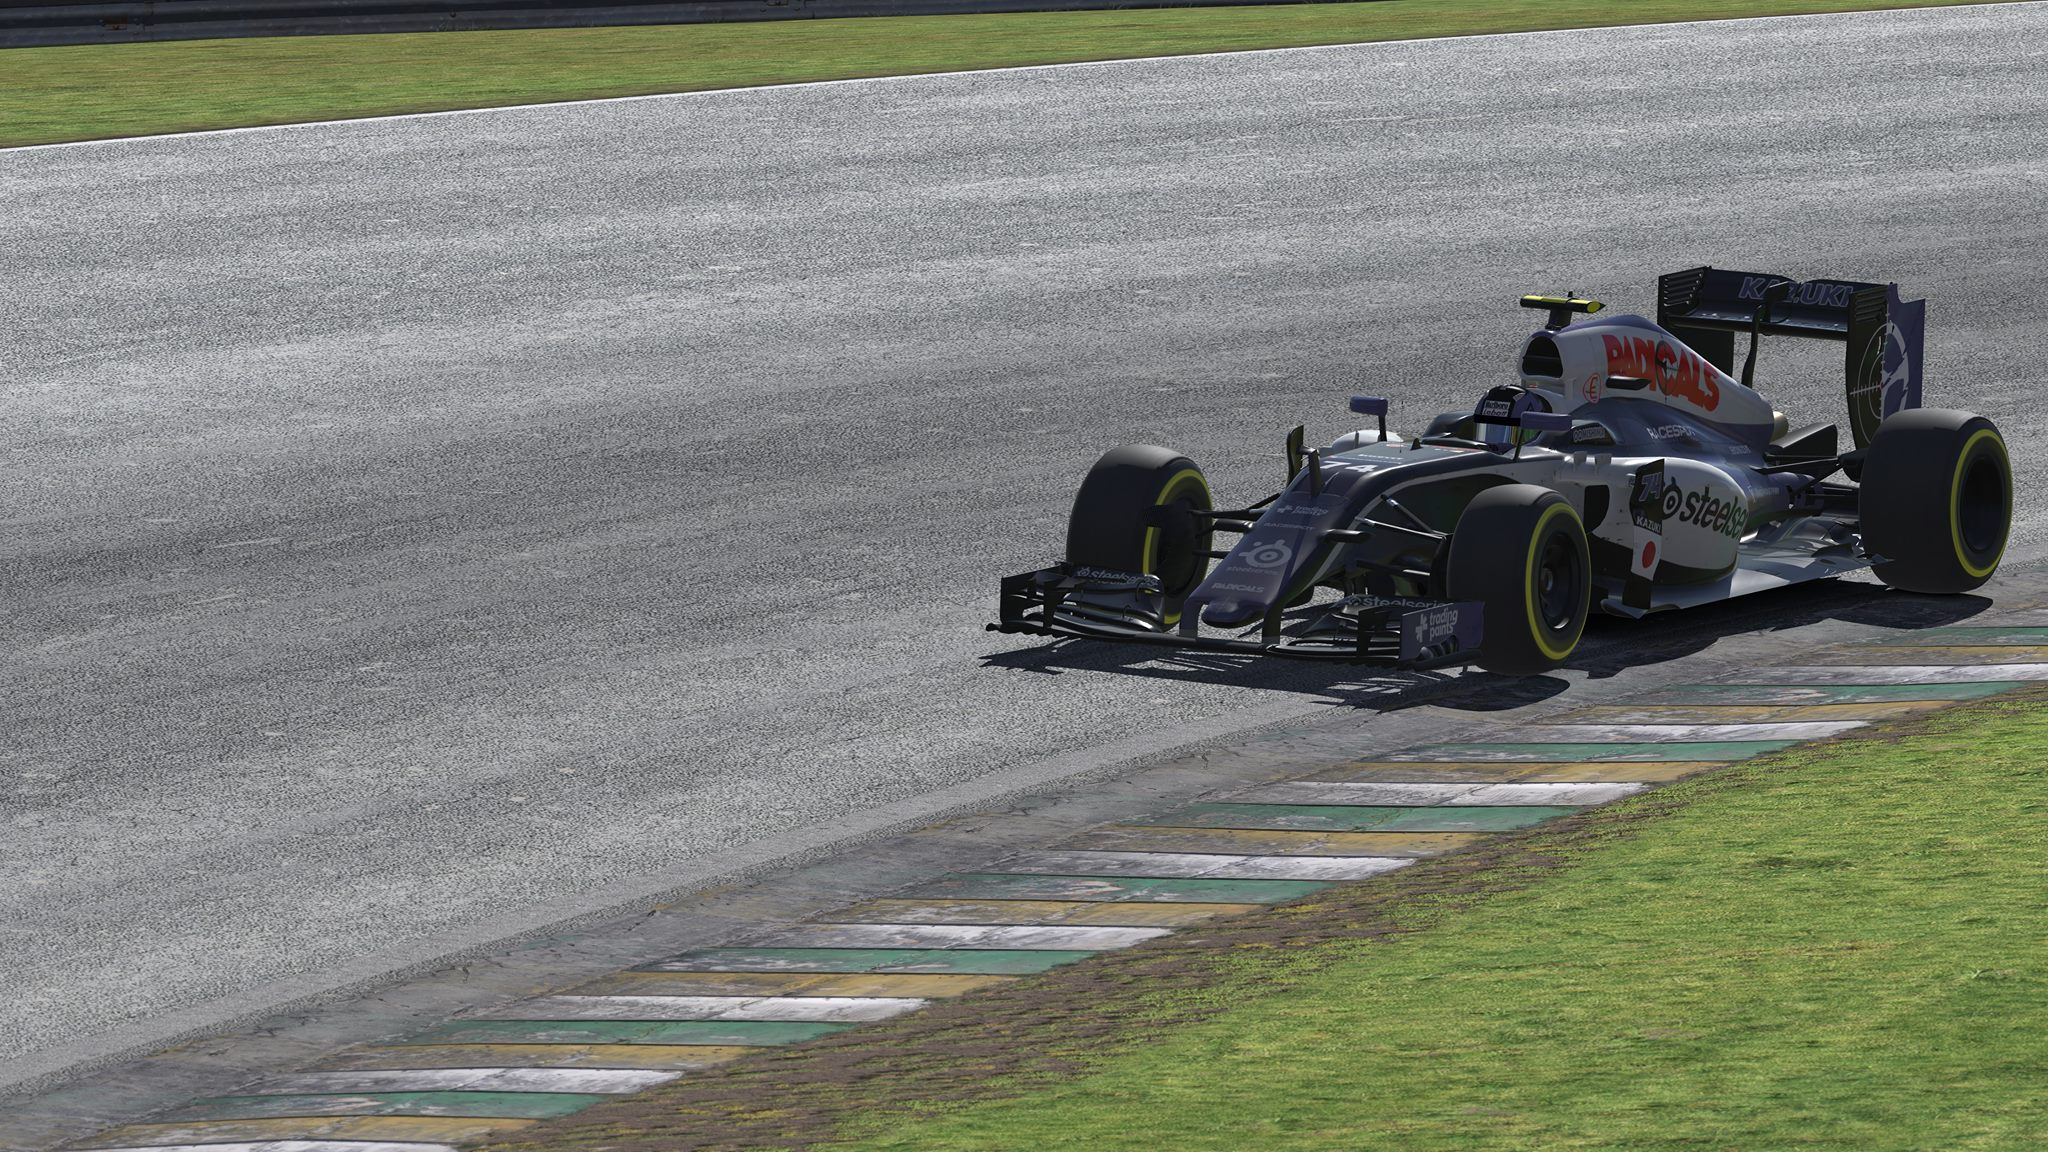 Kazuki getting to grips with the Brazilian tarmac